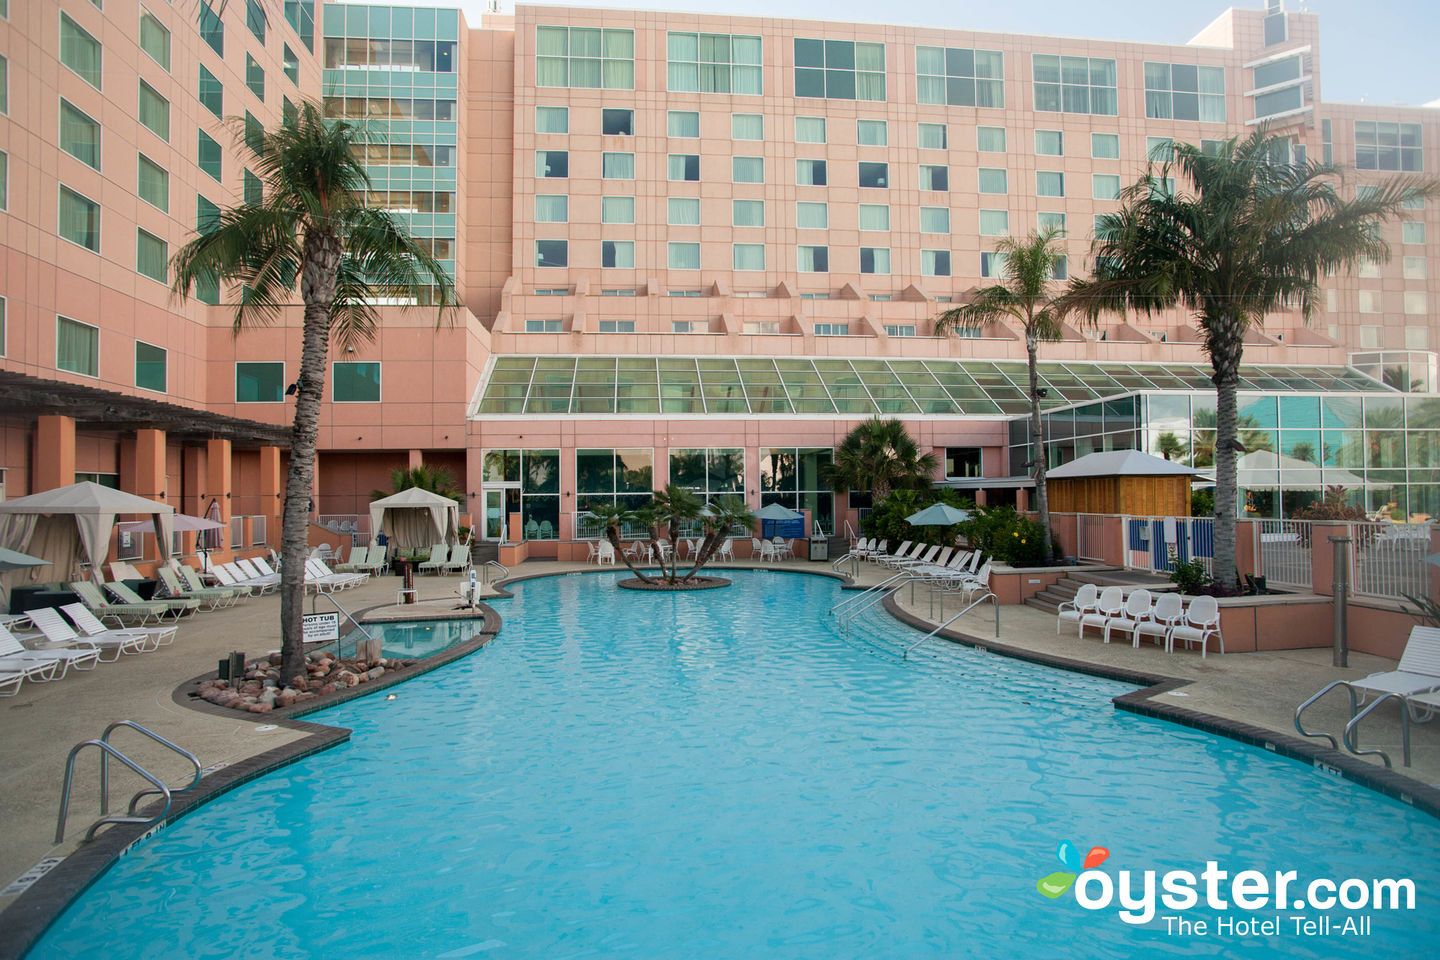 pool v3551508 1440 - How Much Does Moody Gardens Cost